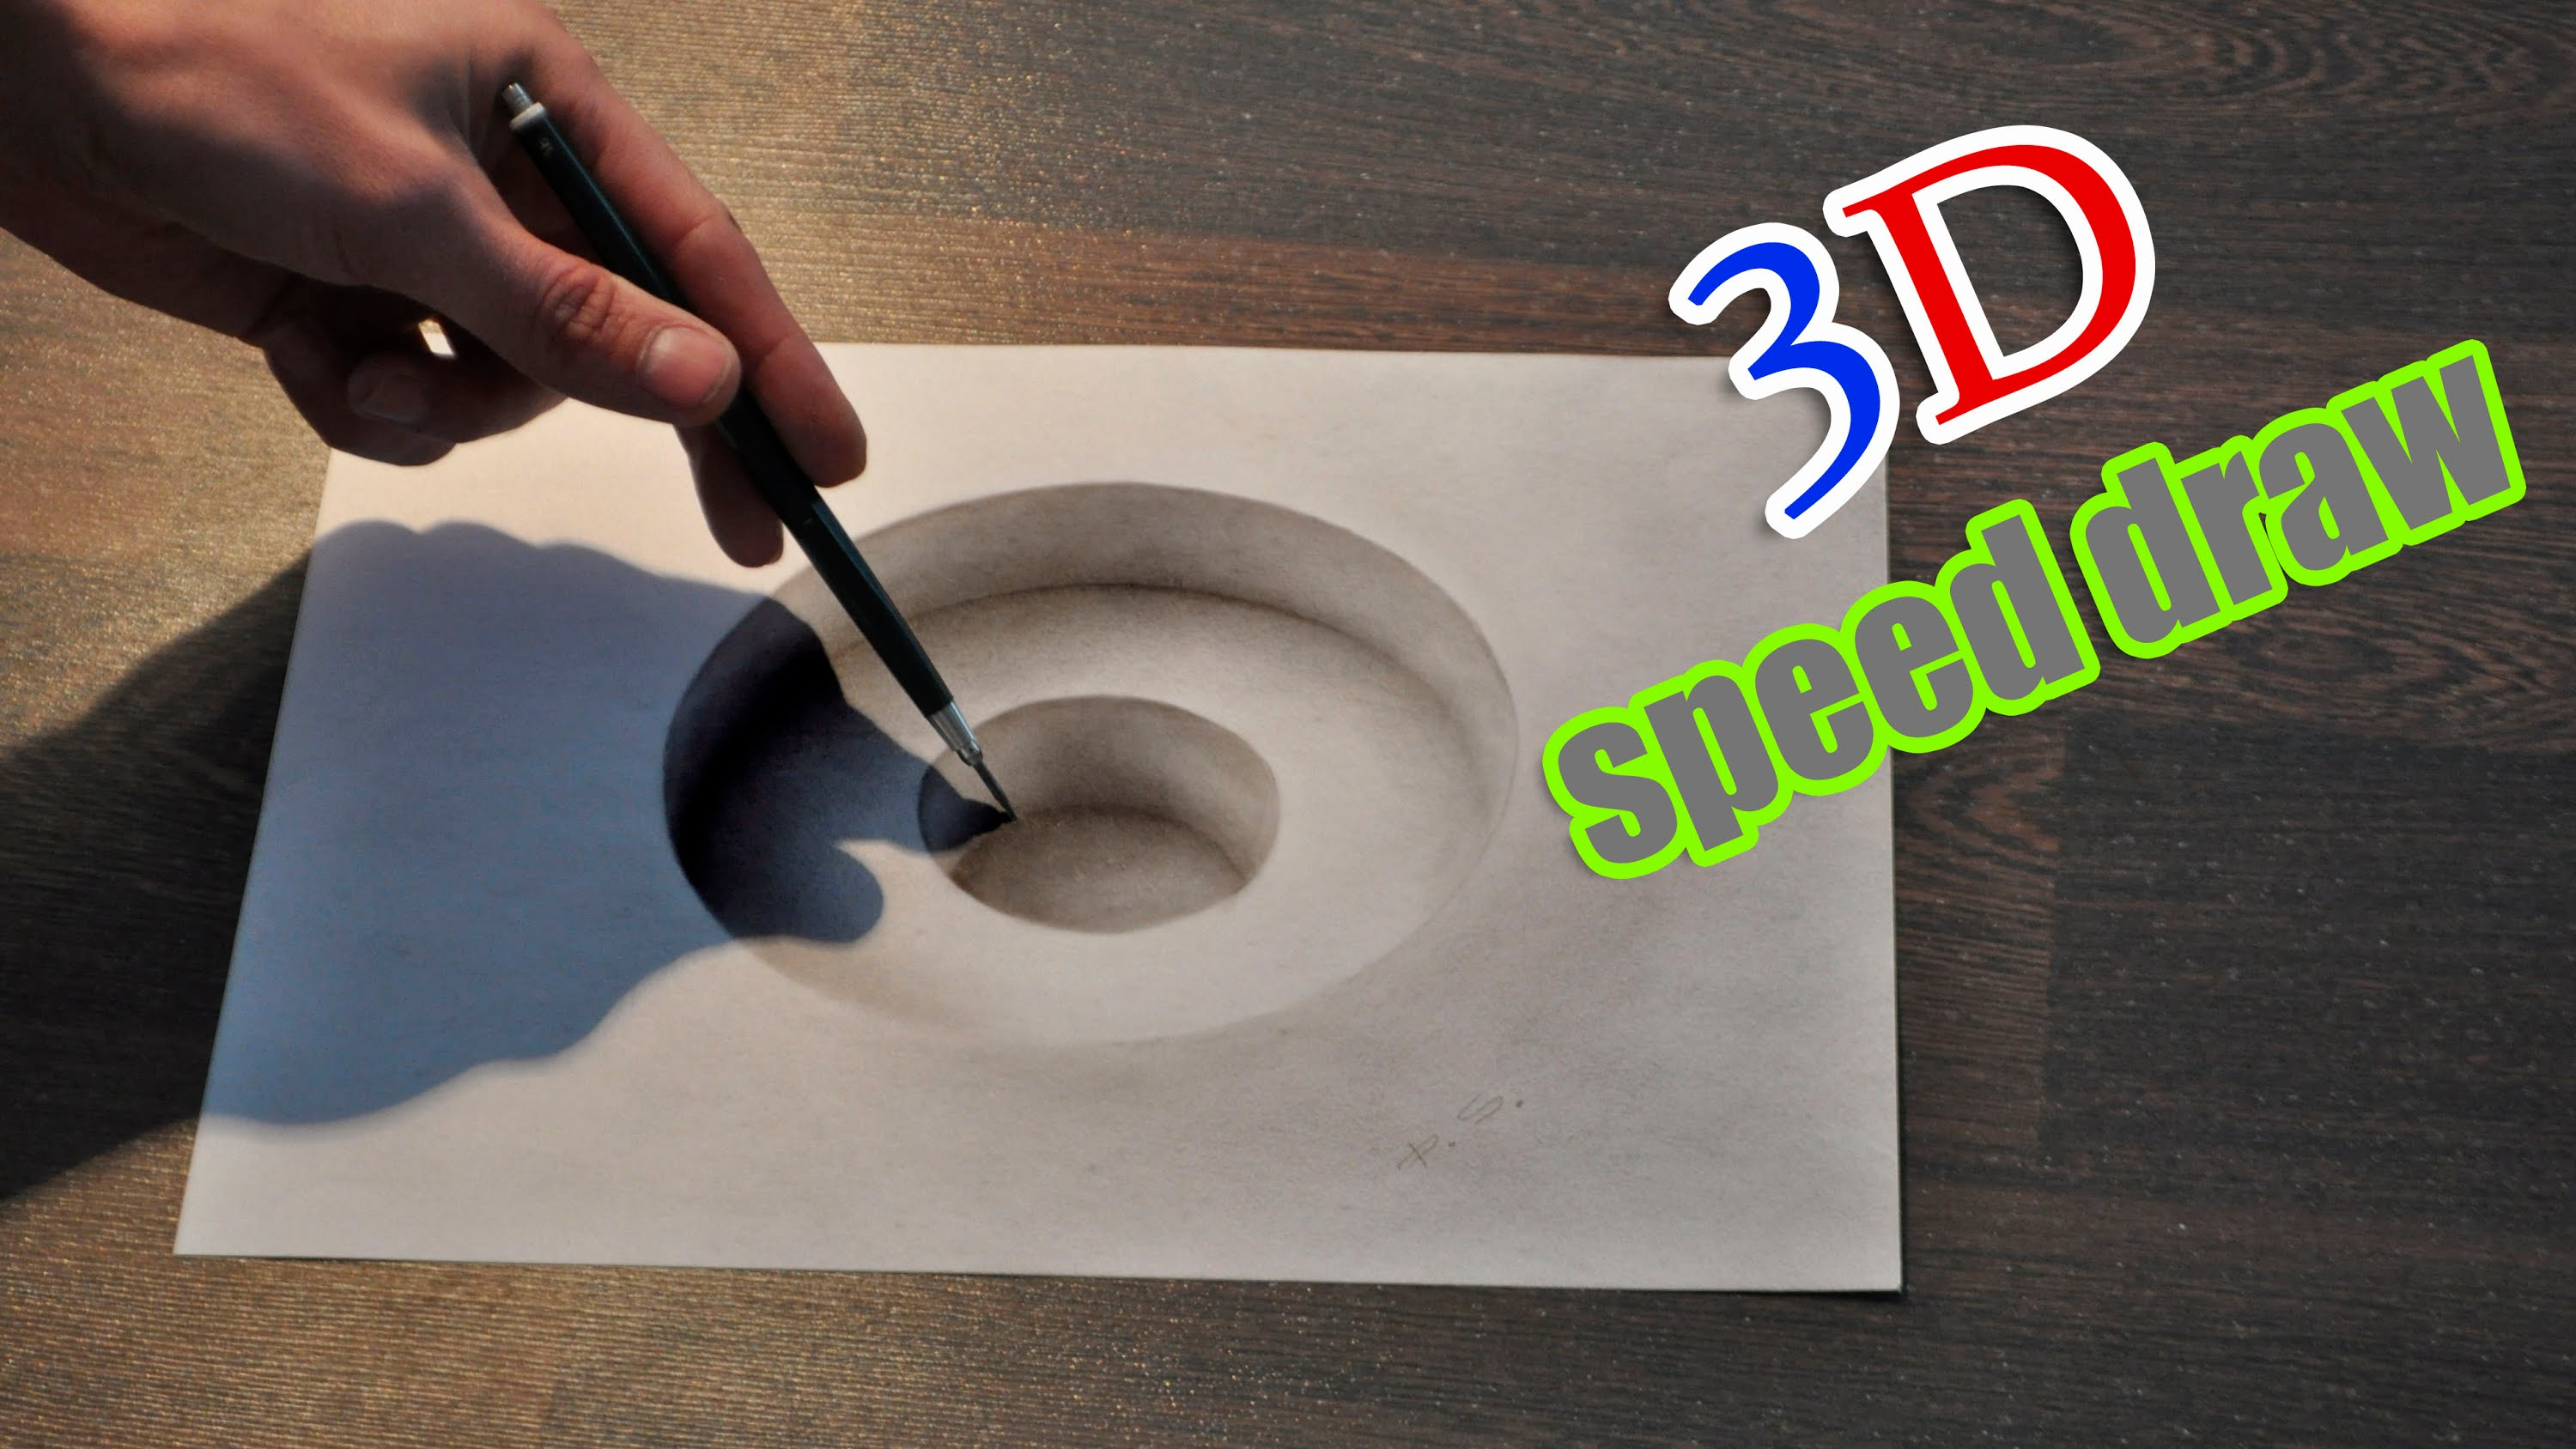 Drawn optical illusion hole in wall Hole/ 3D  painting anamorphic